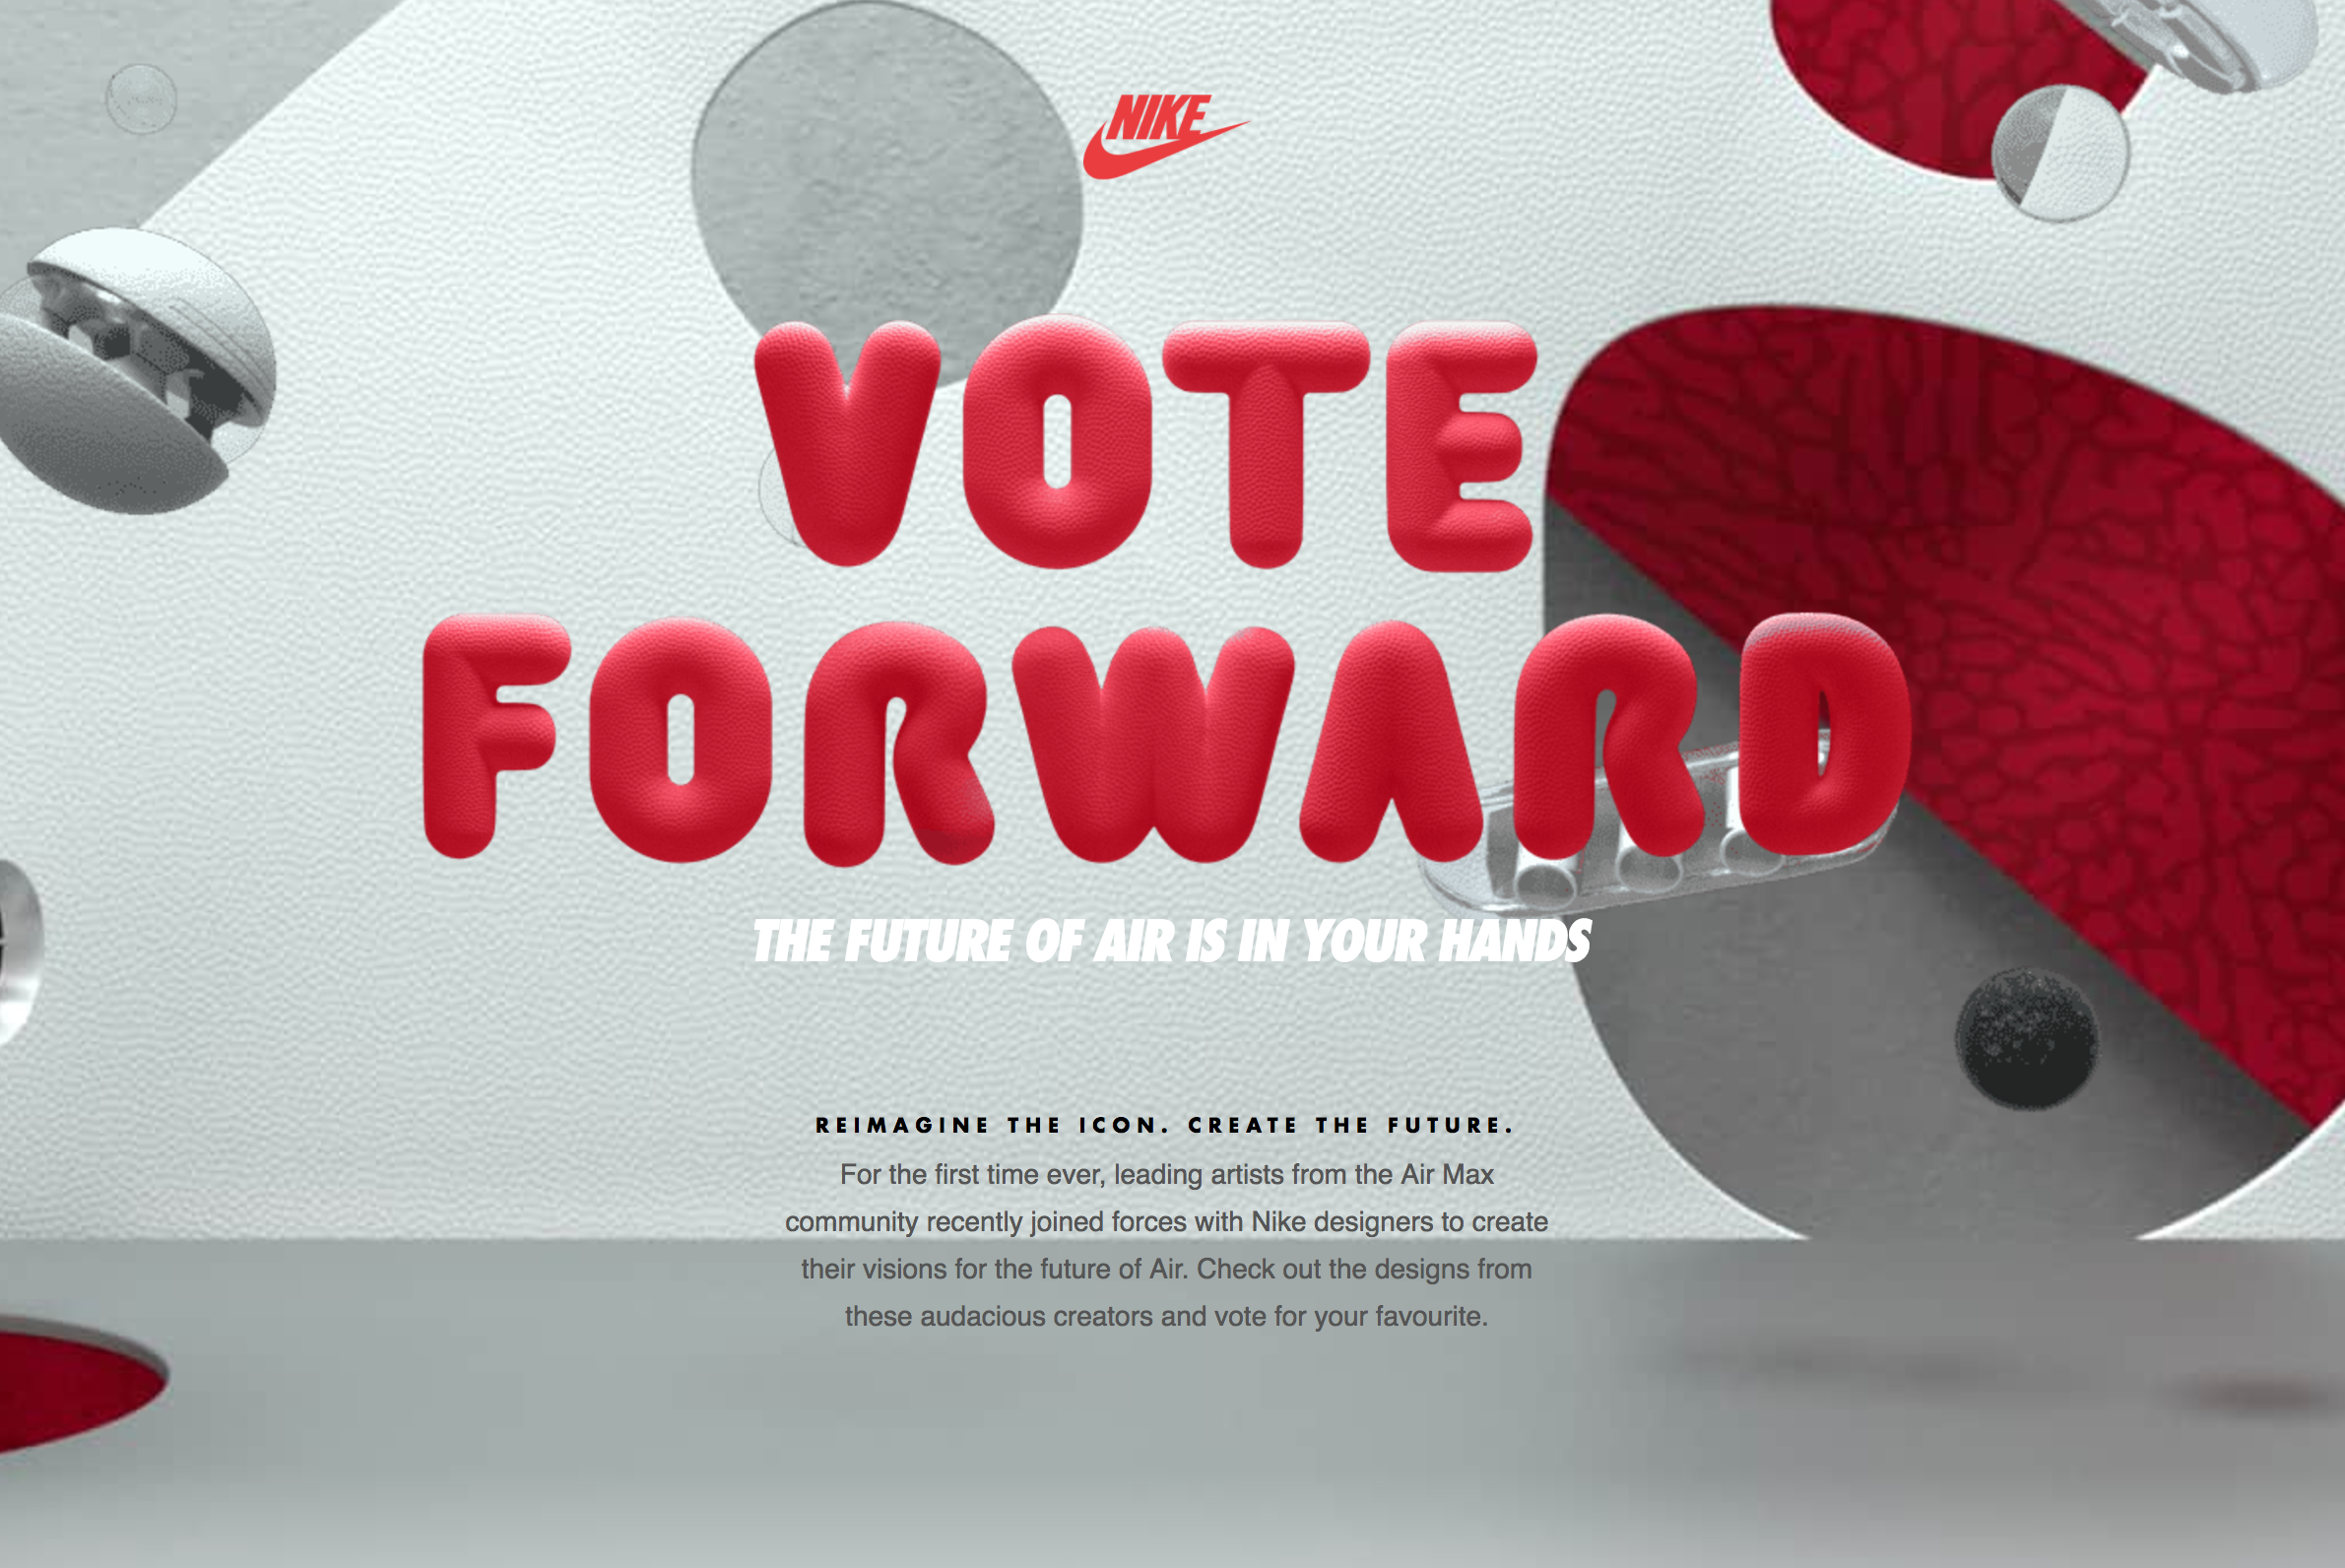 ab9e320842 ... Nike Vote Forward Campaign - AIR MAX DAY 2018 VOTINGS - Snea ...